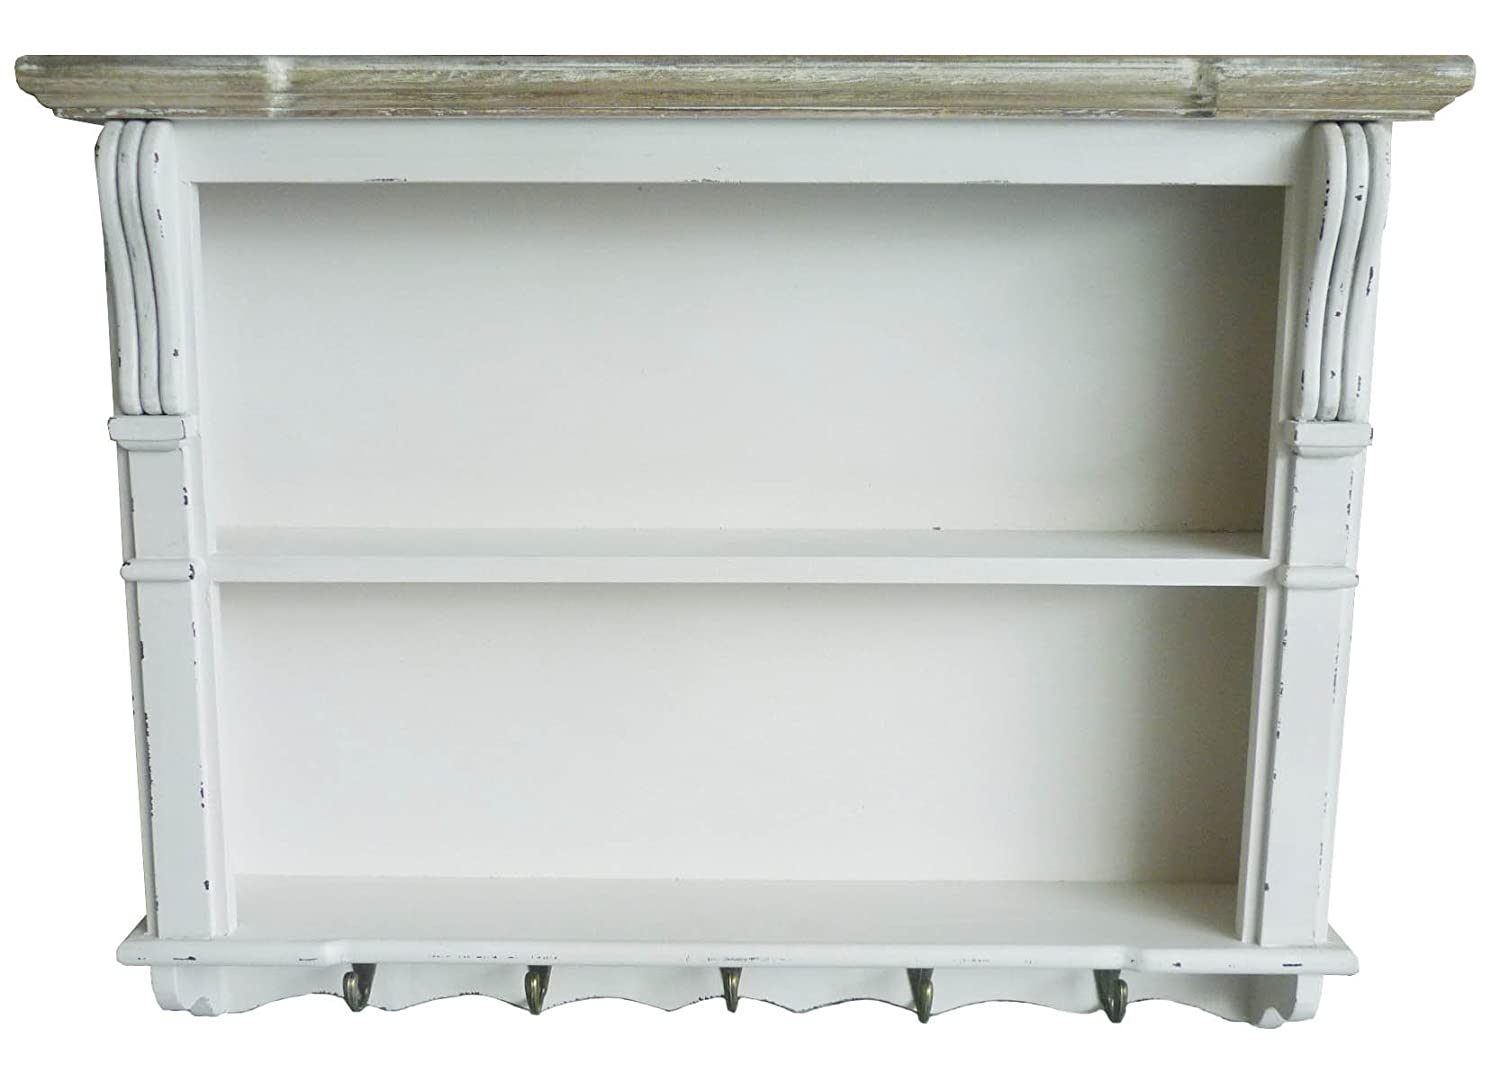 Charles Bentley White Shabby Chic Kitchen Dining Room Wall Shelving Display Unit Dresser Top Shelf Plate Rack Matching Pieces Available Amazoncouk